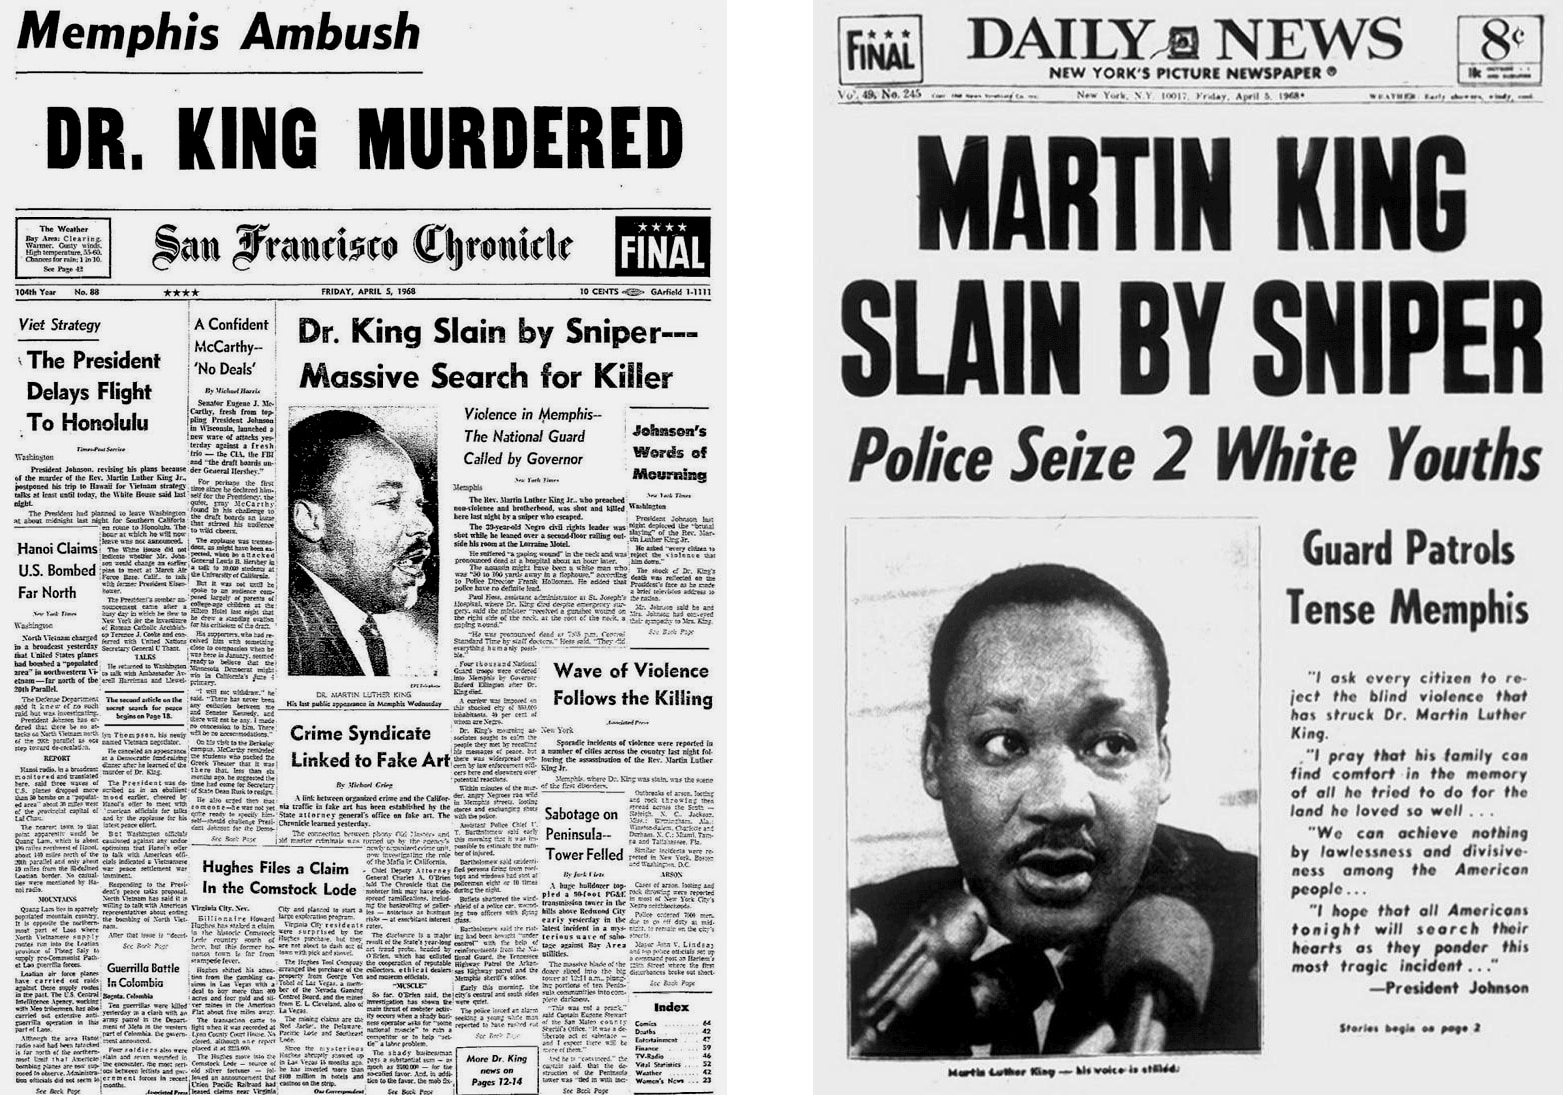 The San Francisco Chronicle and New York Daily News